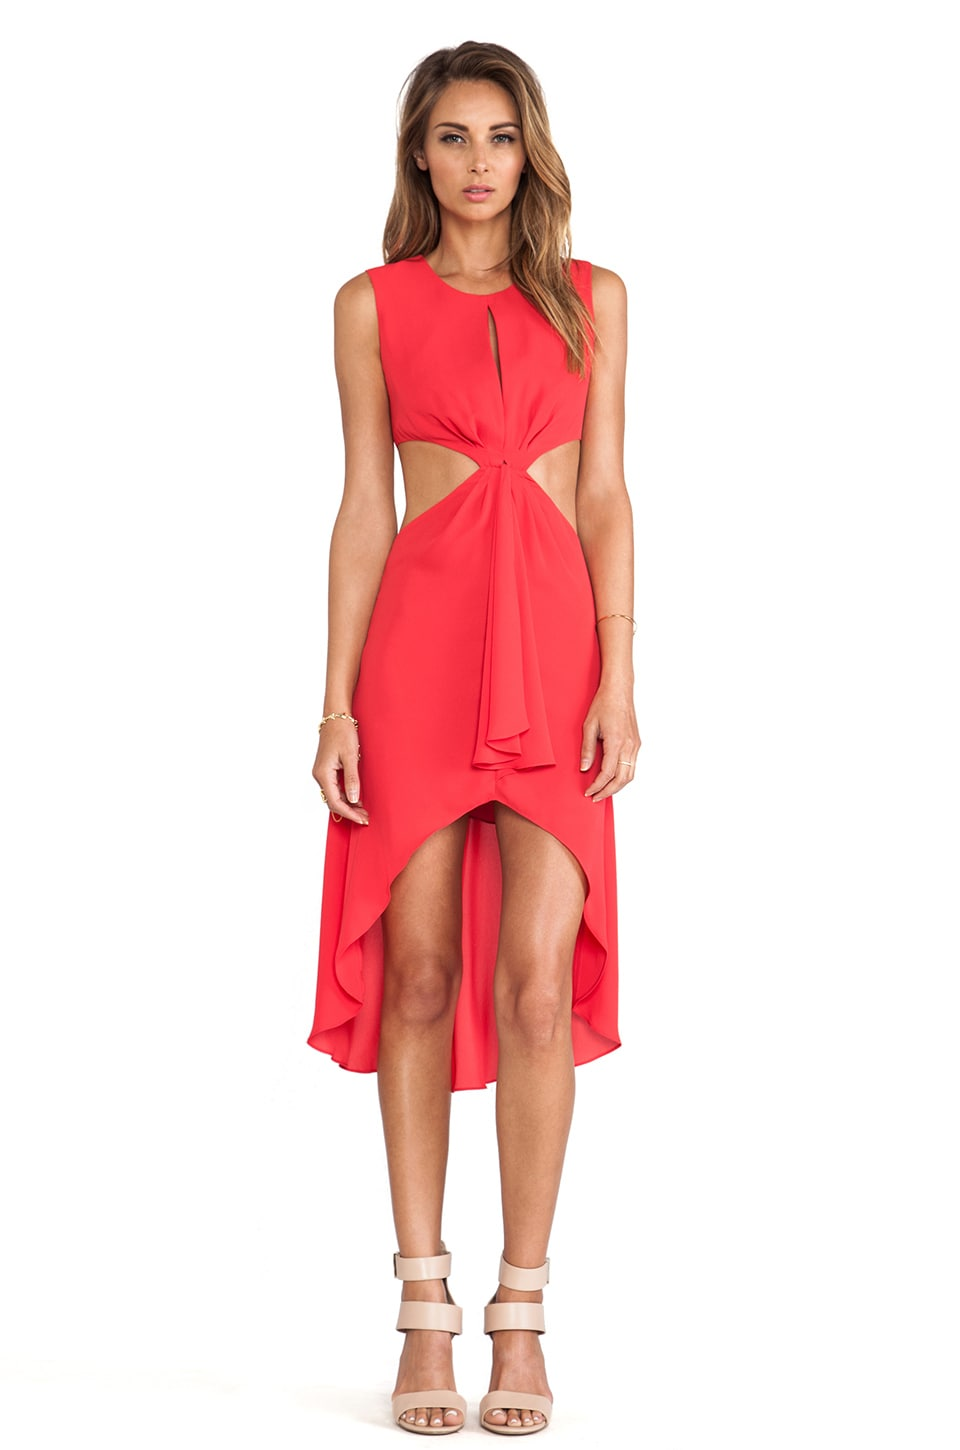 BCBGMAXAZRIA Victoria Cut Out Dress in Lipstick Red